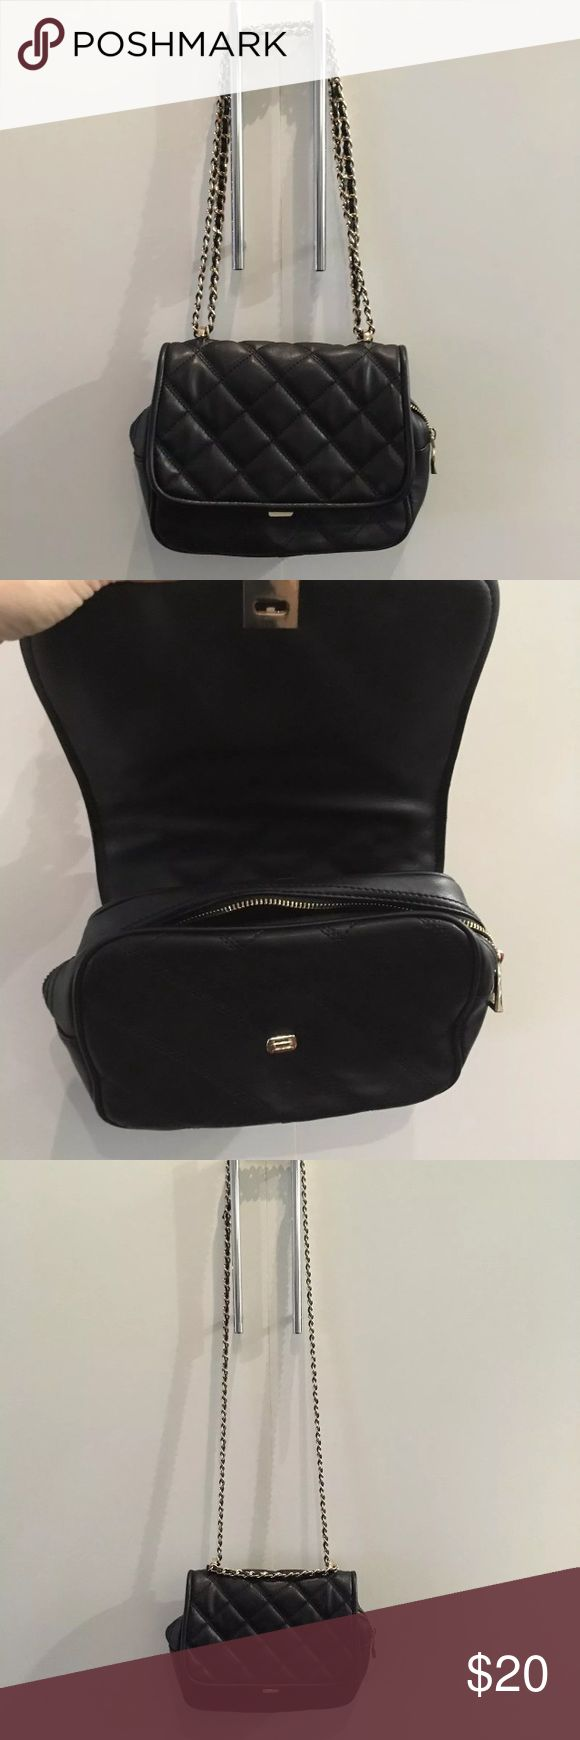 Zara black & gold quilted crossbody bag with chain Excellent condition Black quilted bag with gold chain similar look to Chanel.  Can be worn two ways: cross body or over the shoulder.  Vegan leather    Retail $60 Black Friday cyber Monday deal! Zara Bags Crossbody Bags